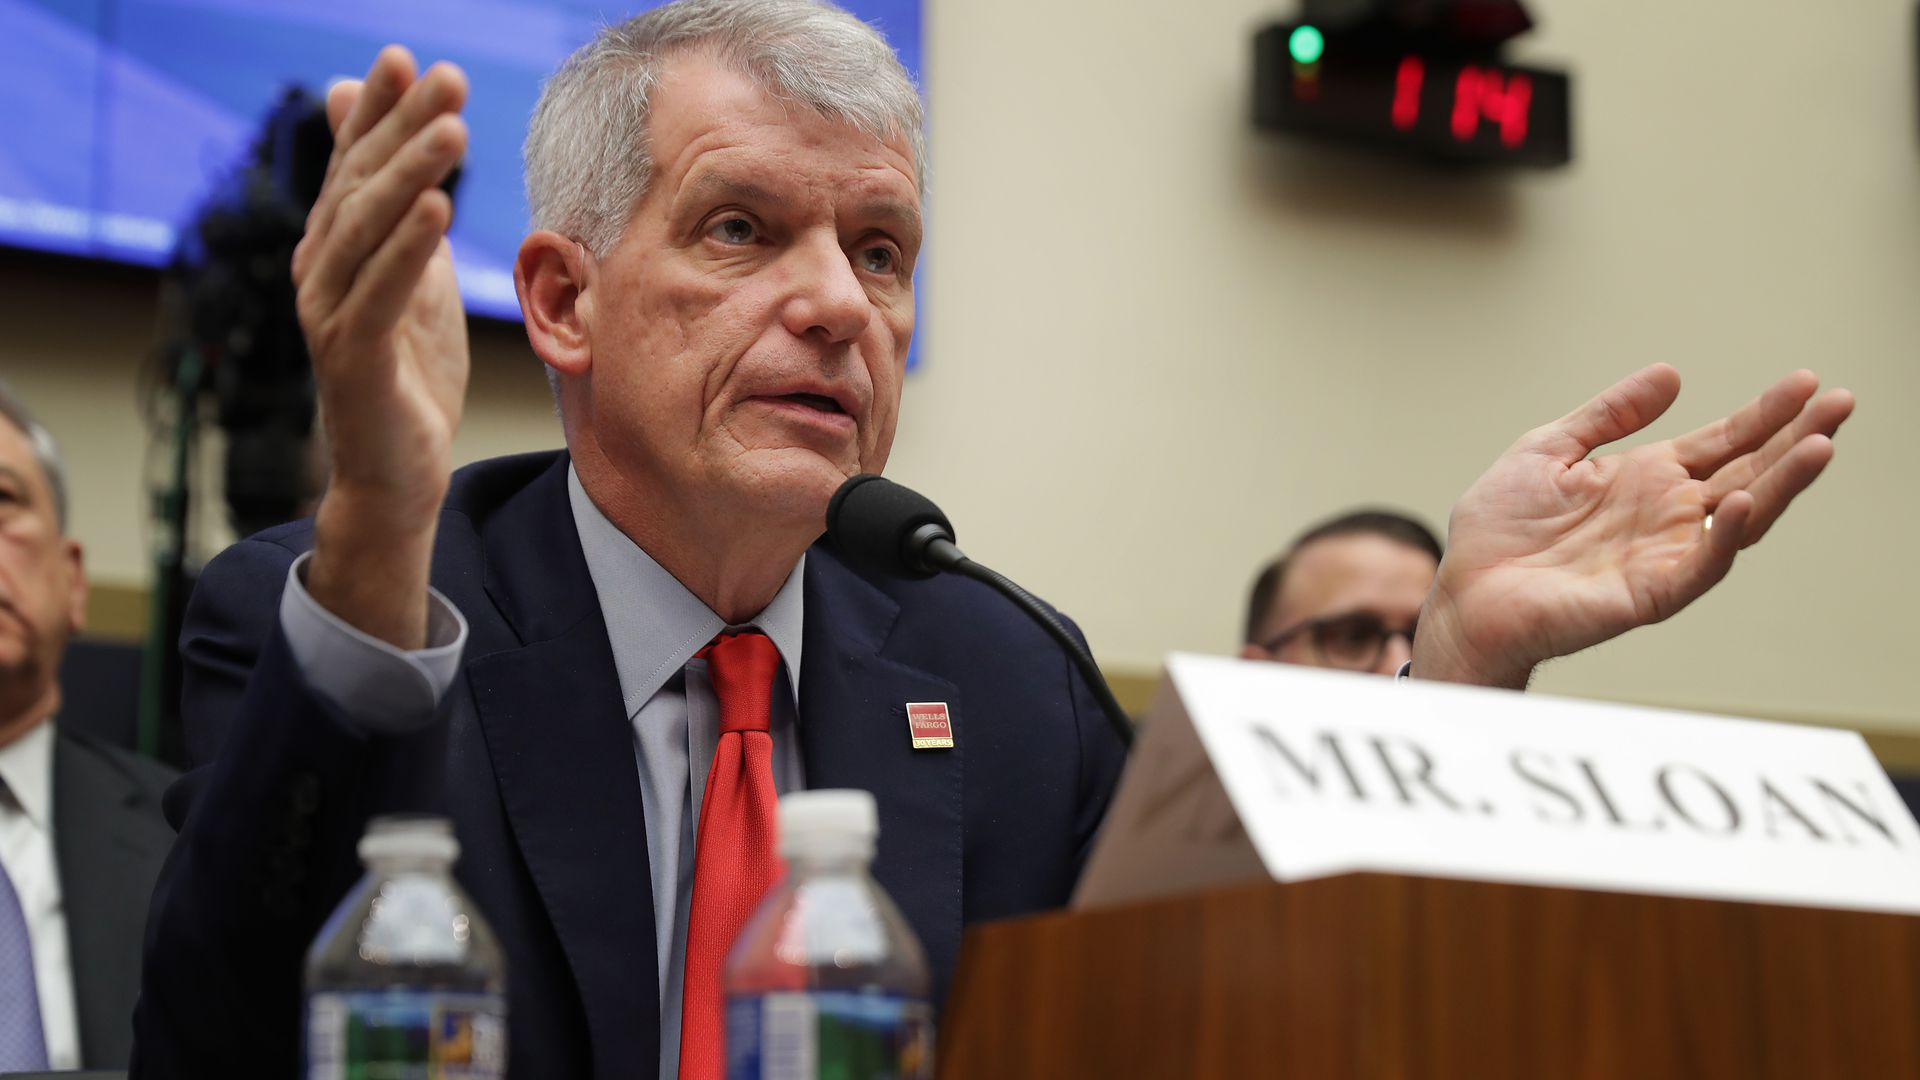 Wells Fargo and Company CEO Timothy Sloan testifies before the House Financial Services Committee